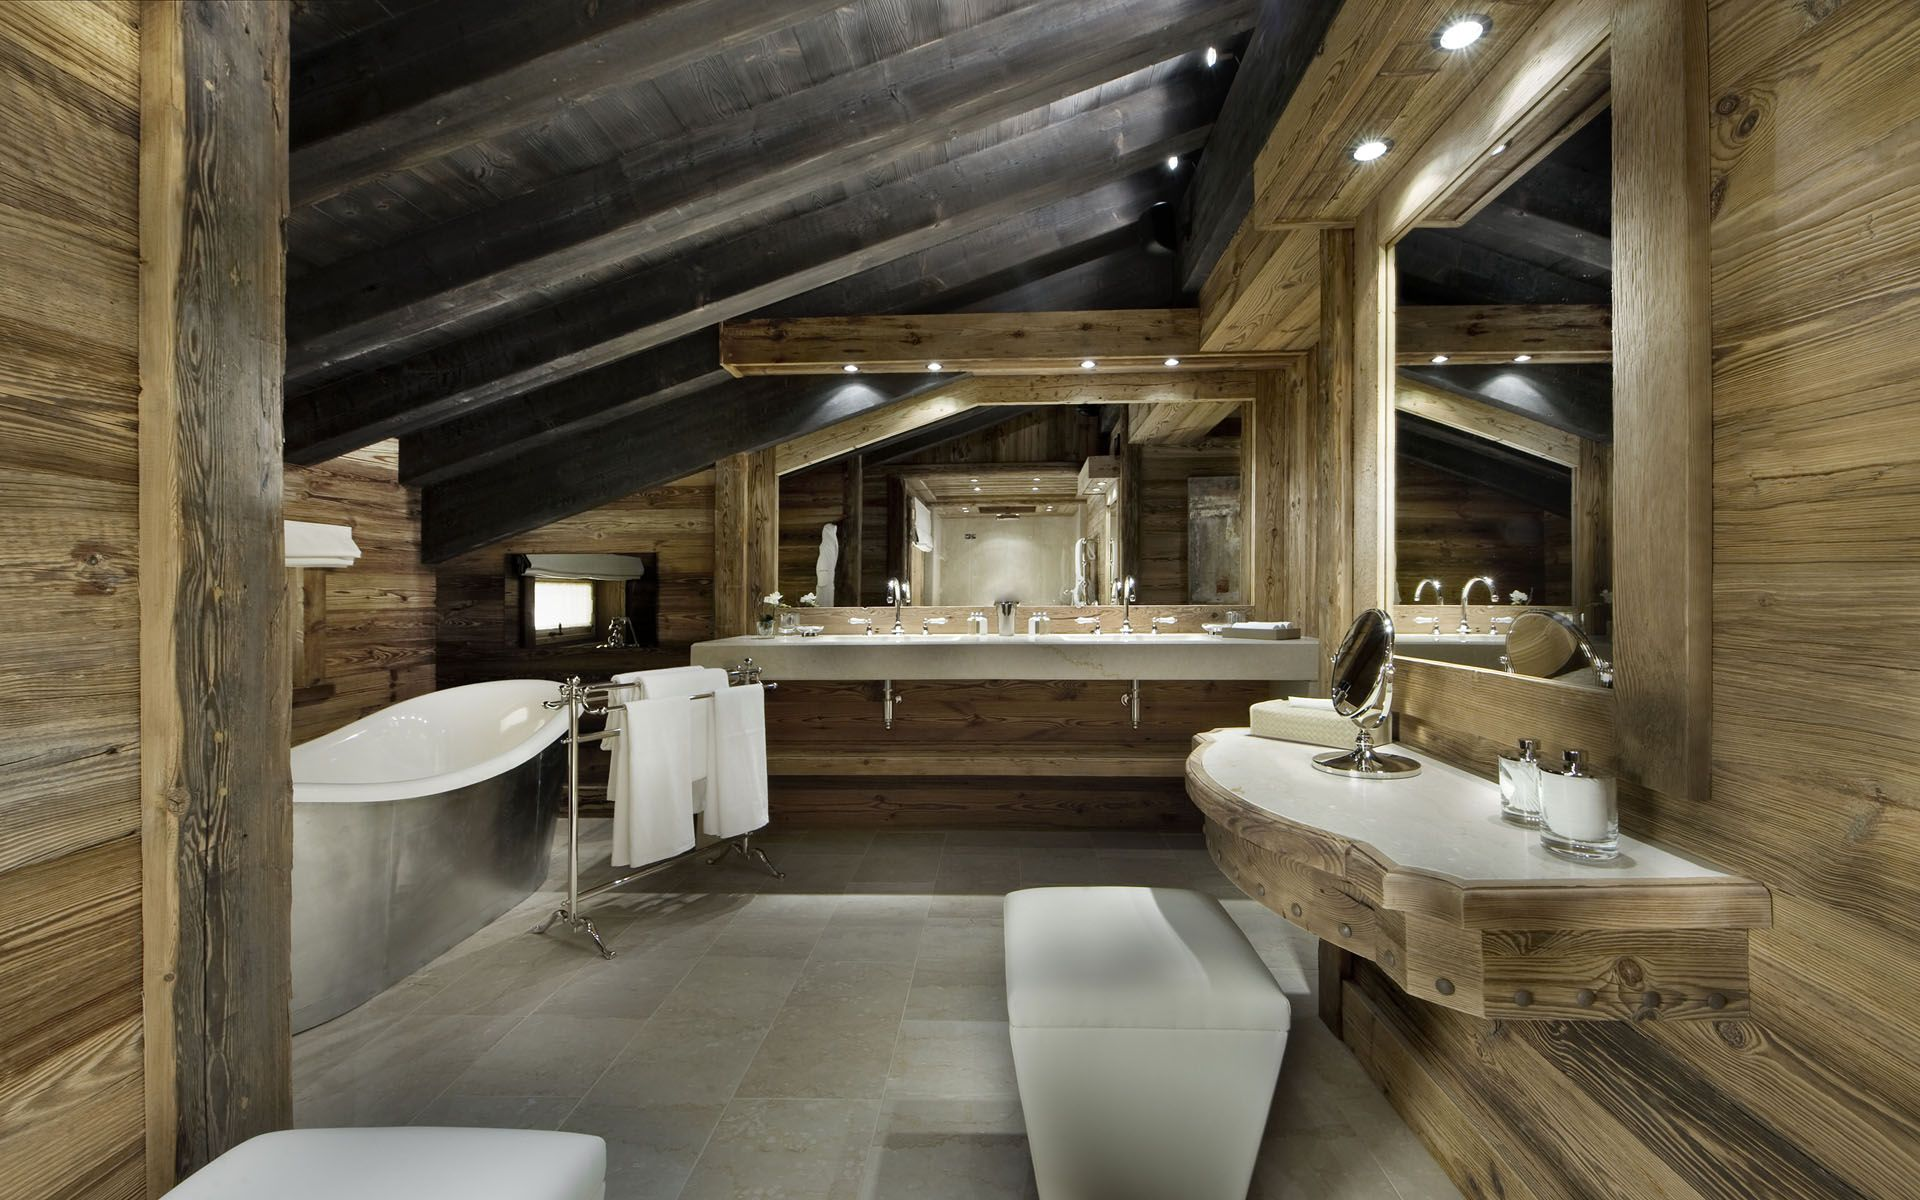 Luxury Ski Chalet, Chalet Edelweiss, Courchevel 1850, France ...